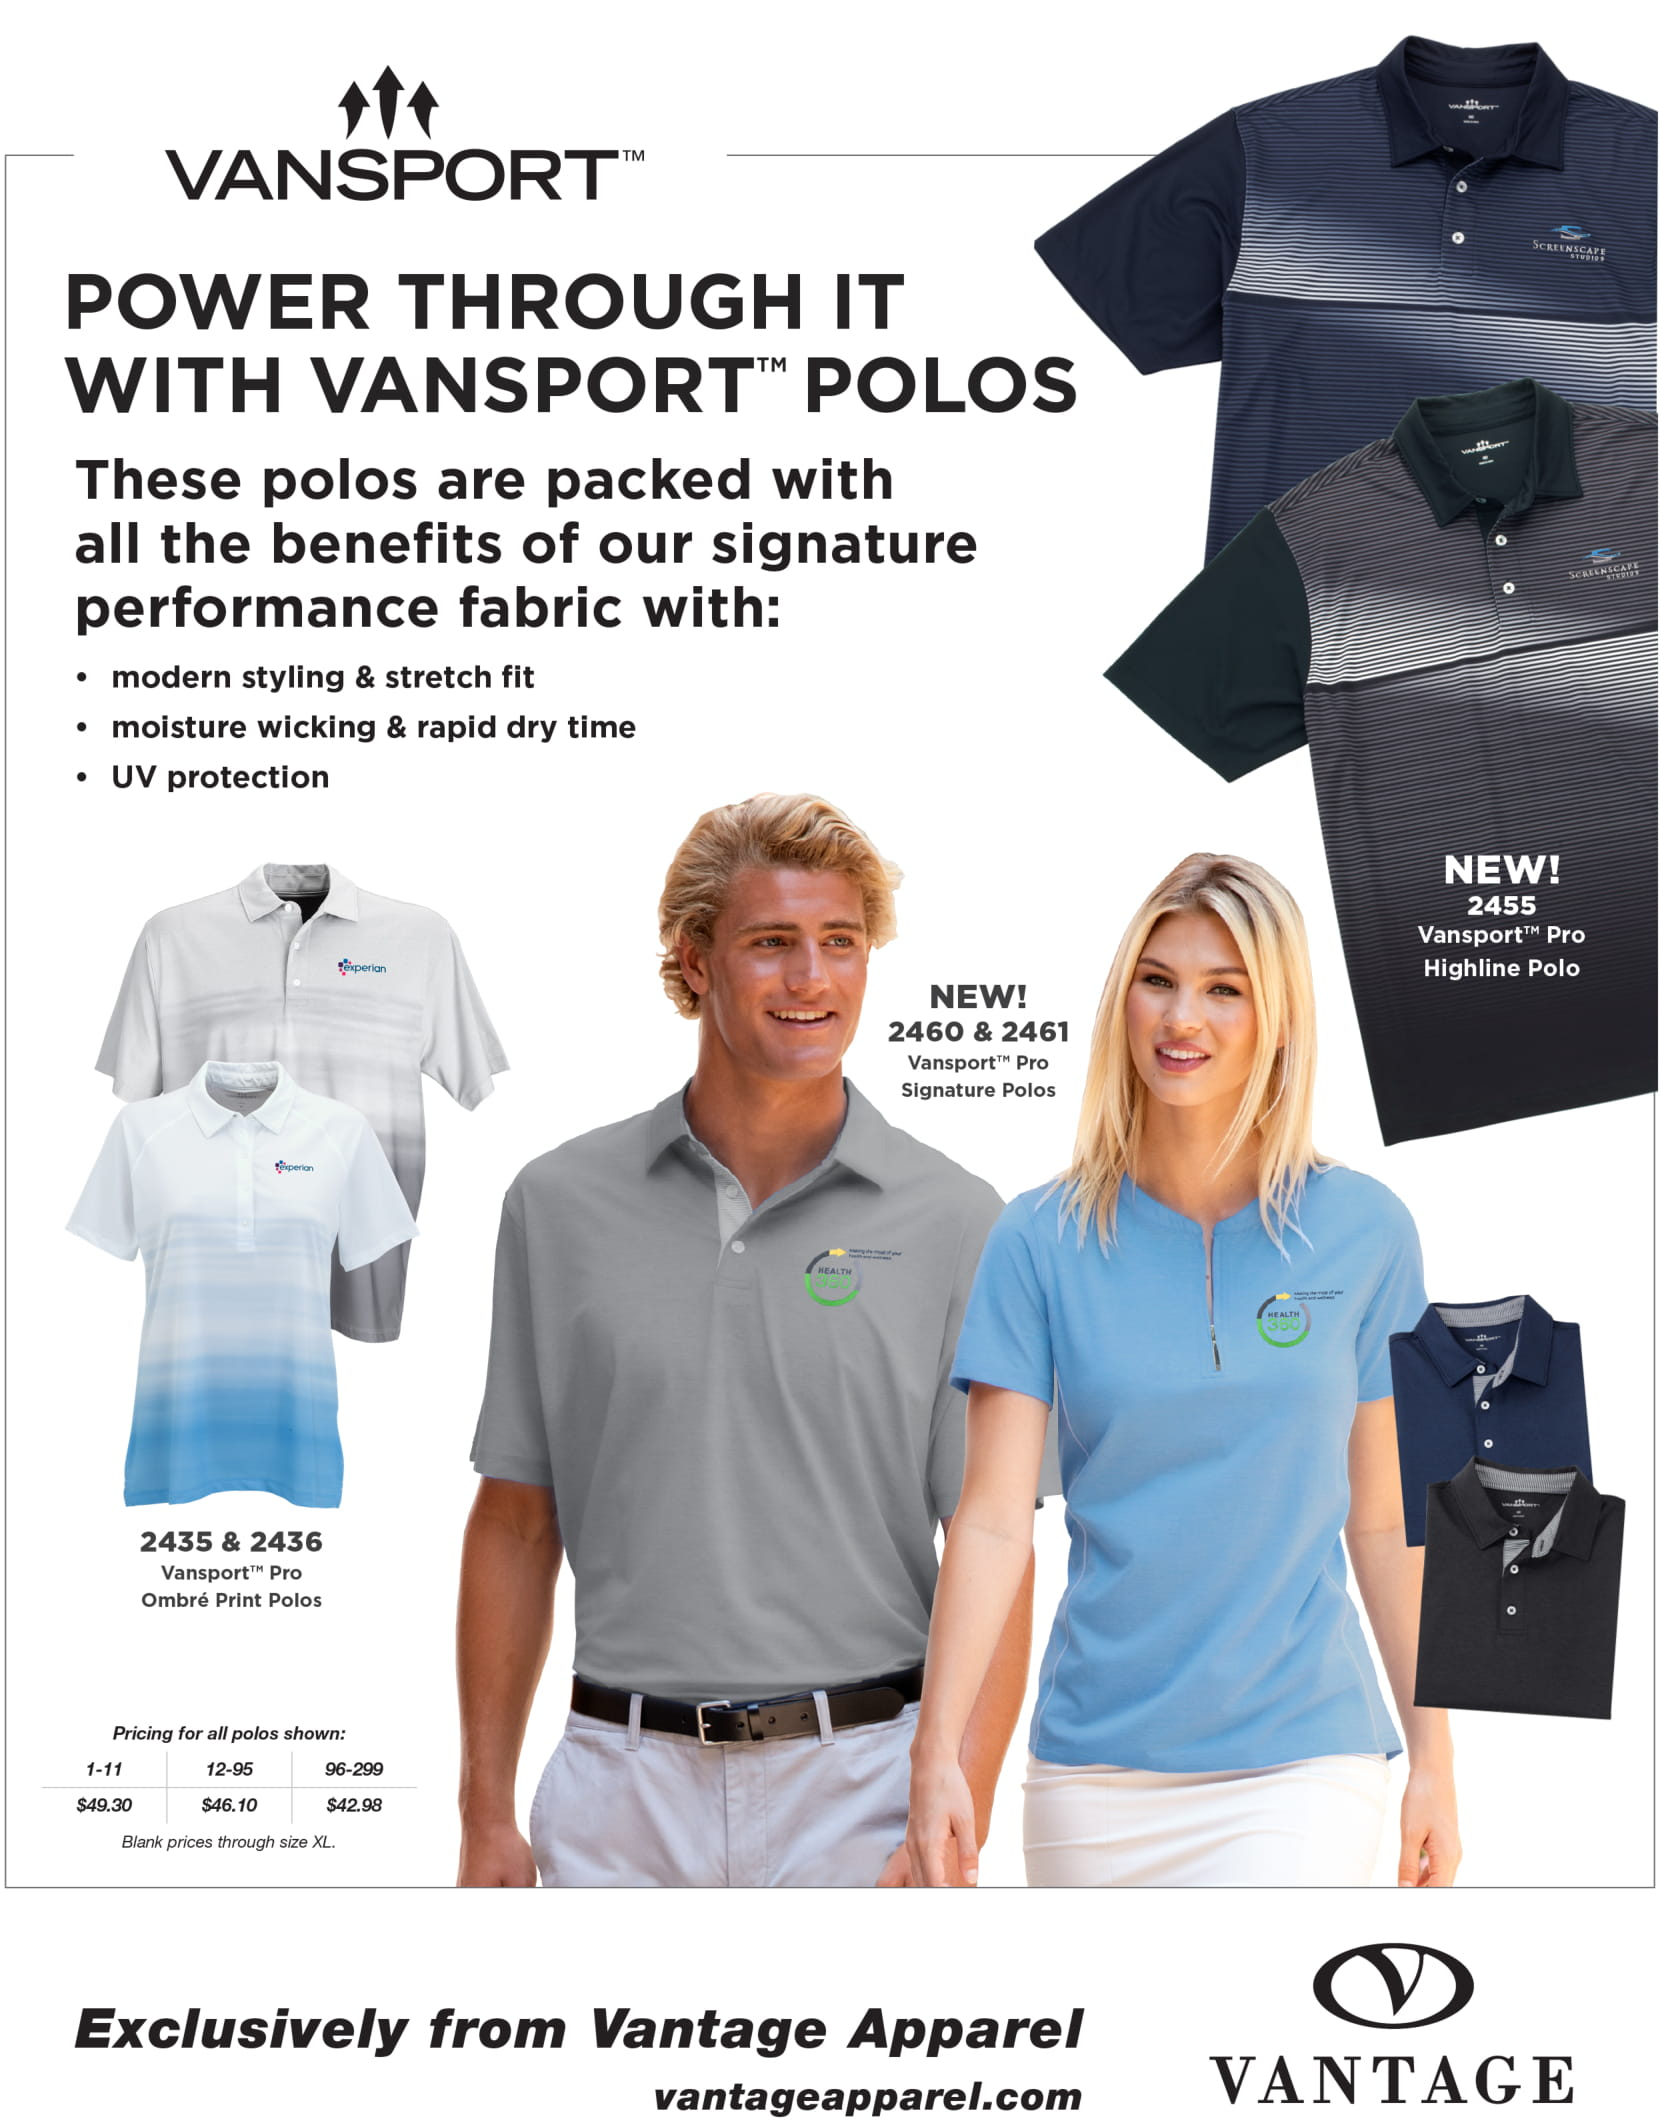 Power Through It With Vansport Polos